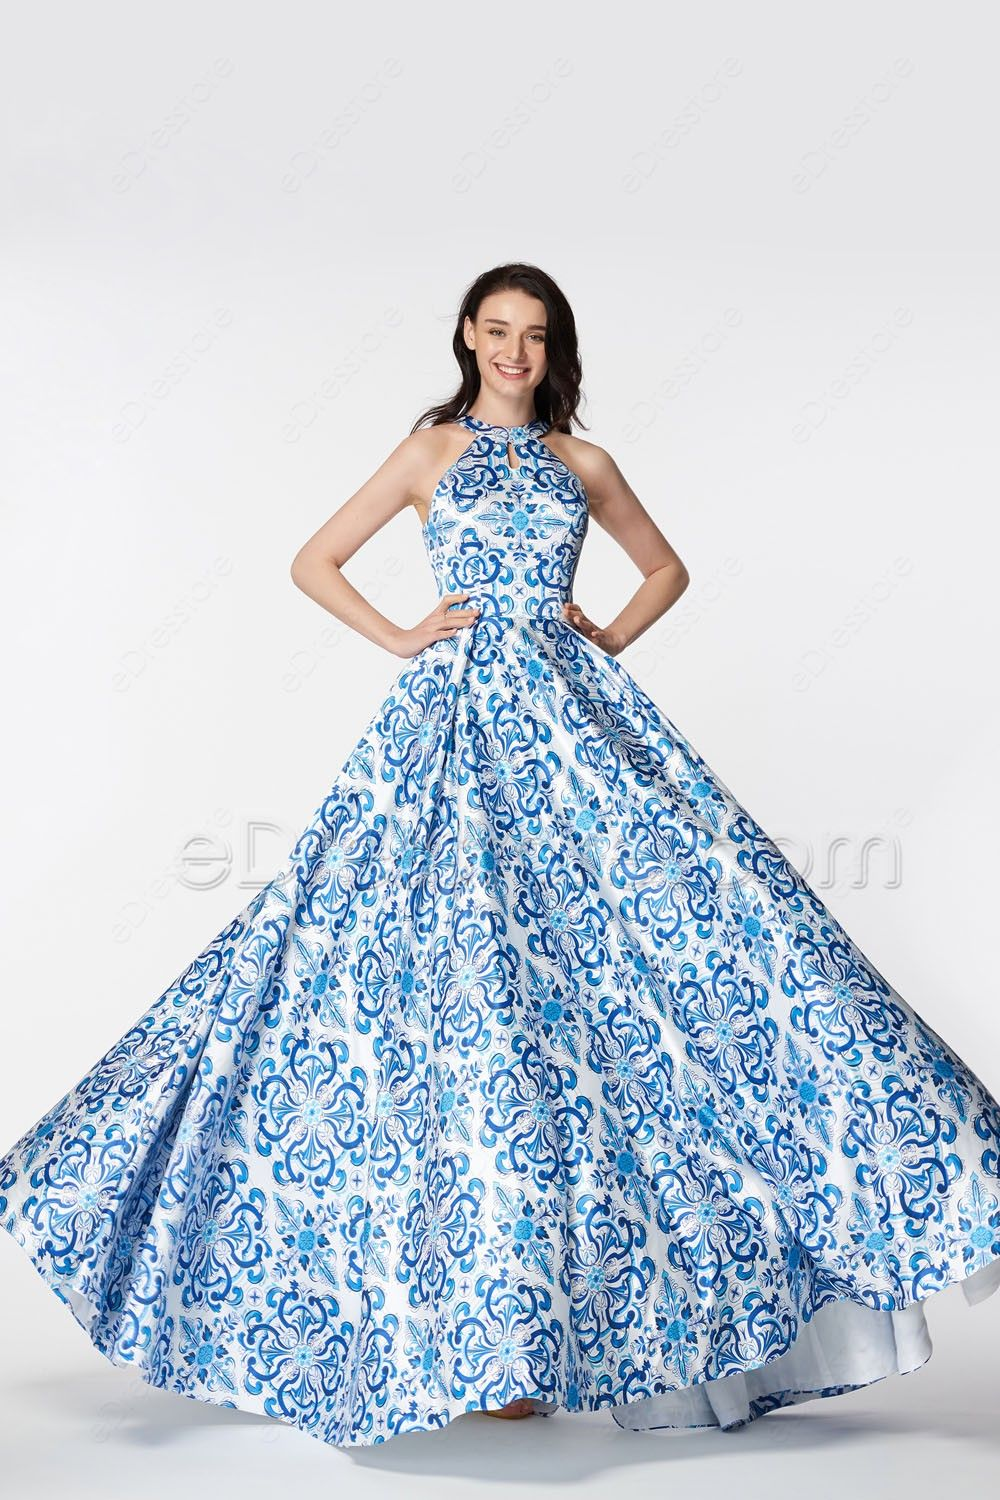 Blue Backless Print Ball Gown Prom Dresses | Ball gowns, Ball gown ...